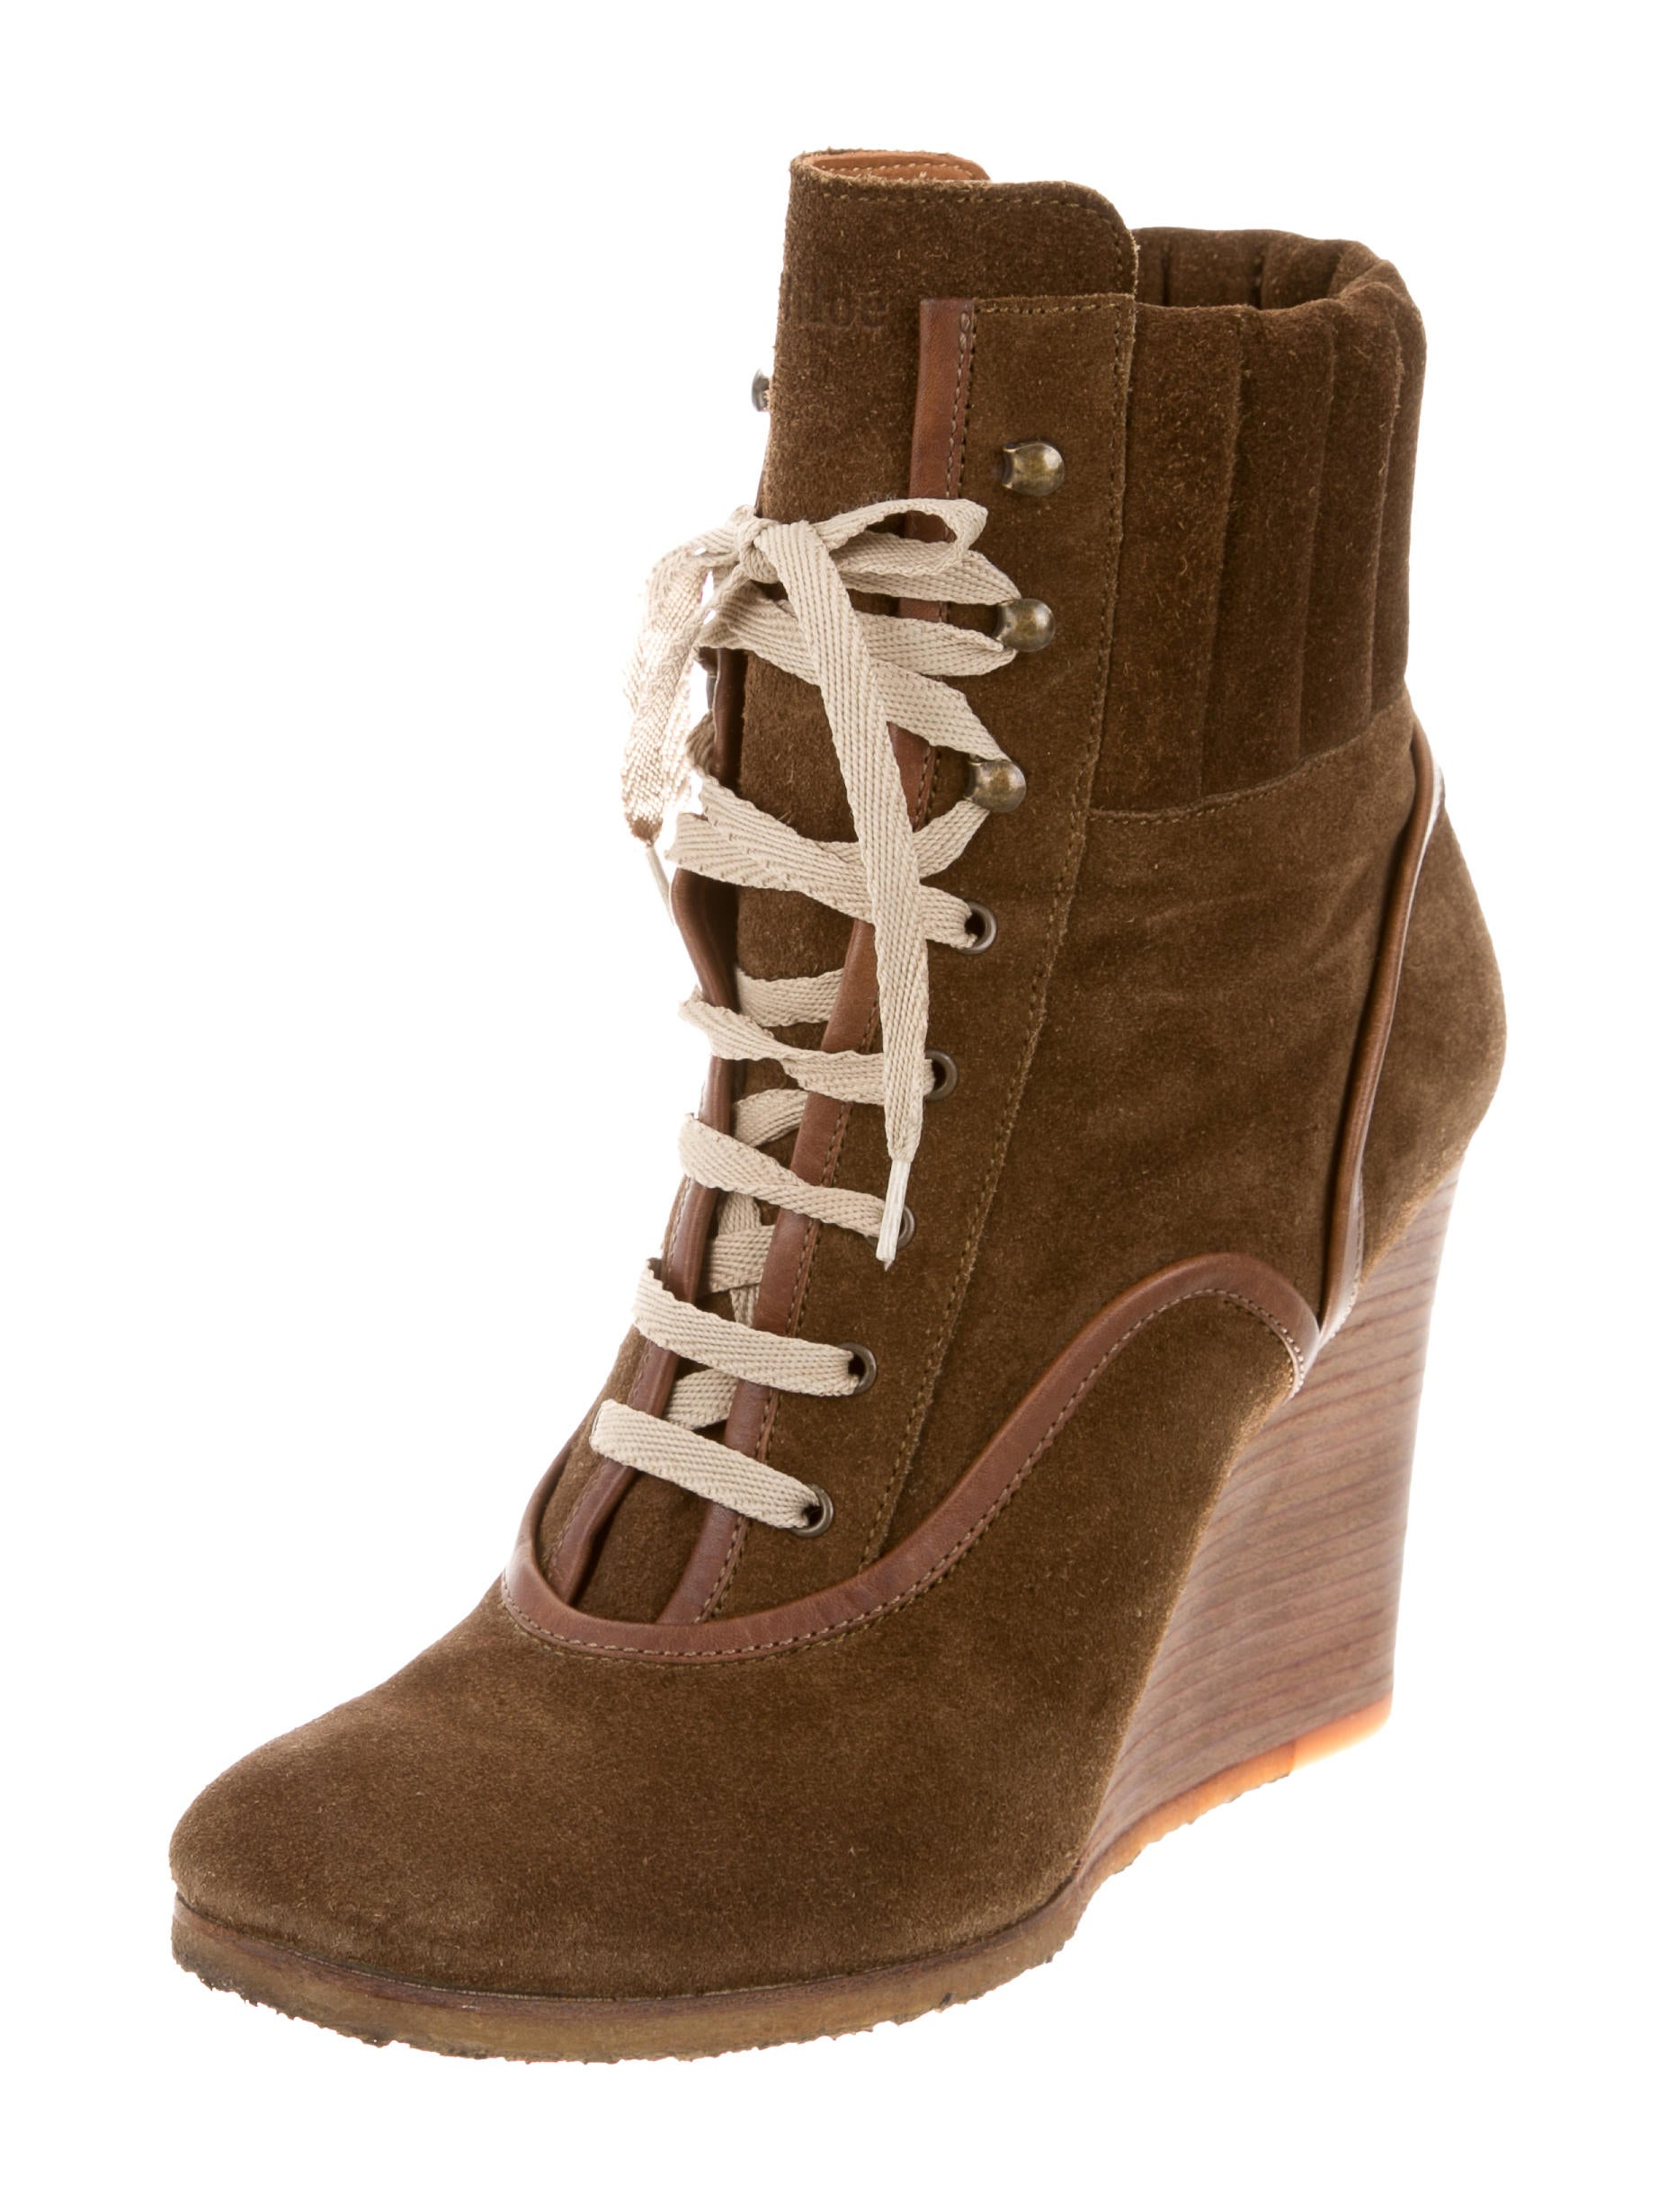 chlo 233 suede wedge boots shoes chl52009 the realreal